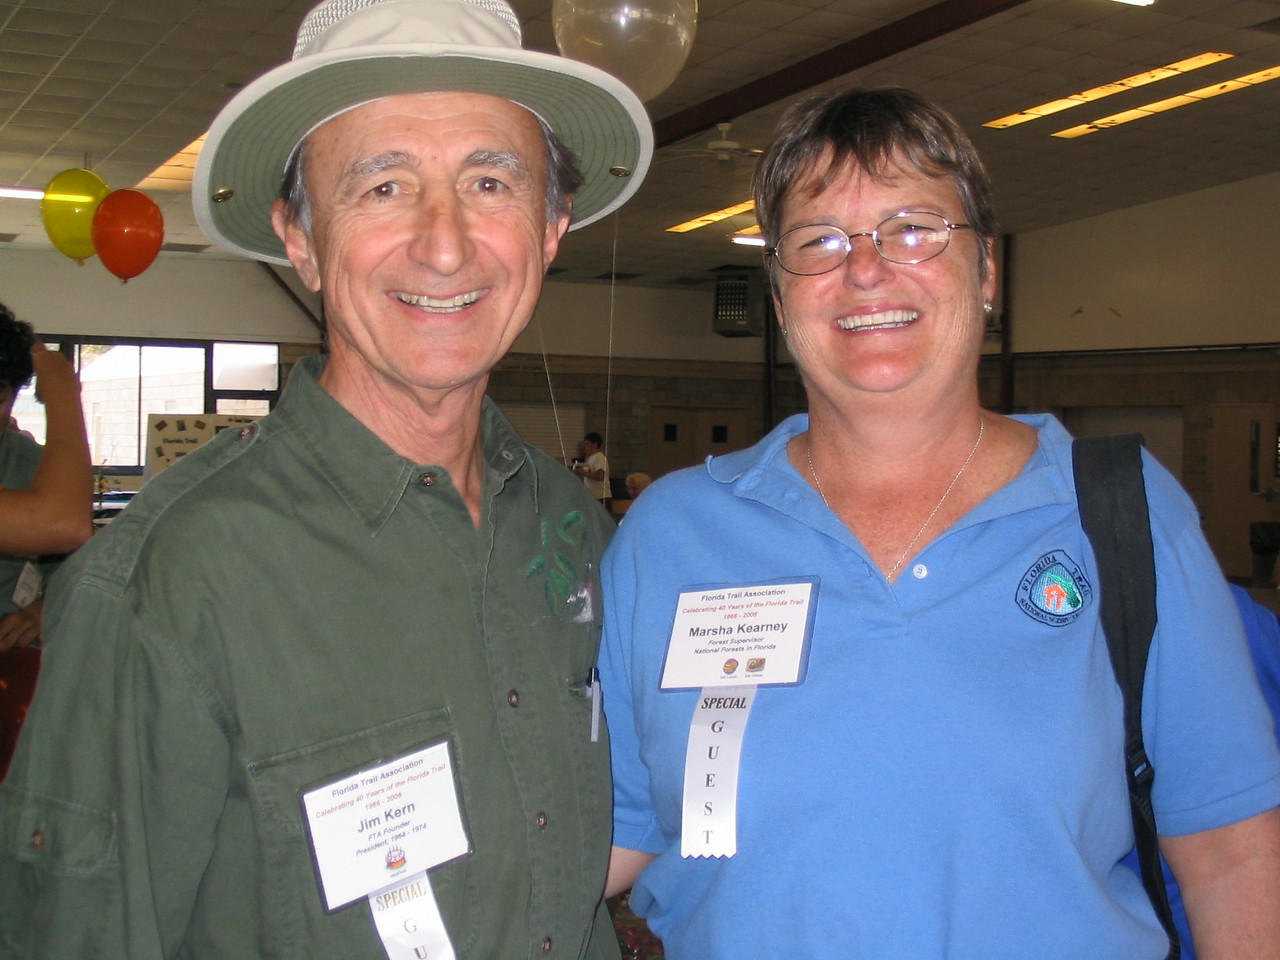 FTA Founder Jim Kern with Marsha Kearney, director of the National Forests in Florida<br /> PHOTO CREDIT: Diane Wilkins / Florida Trail Association